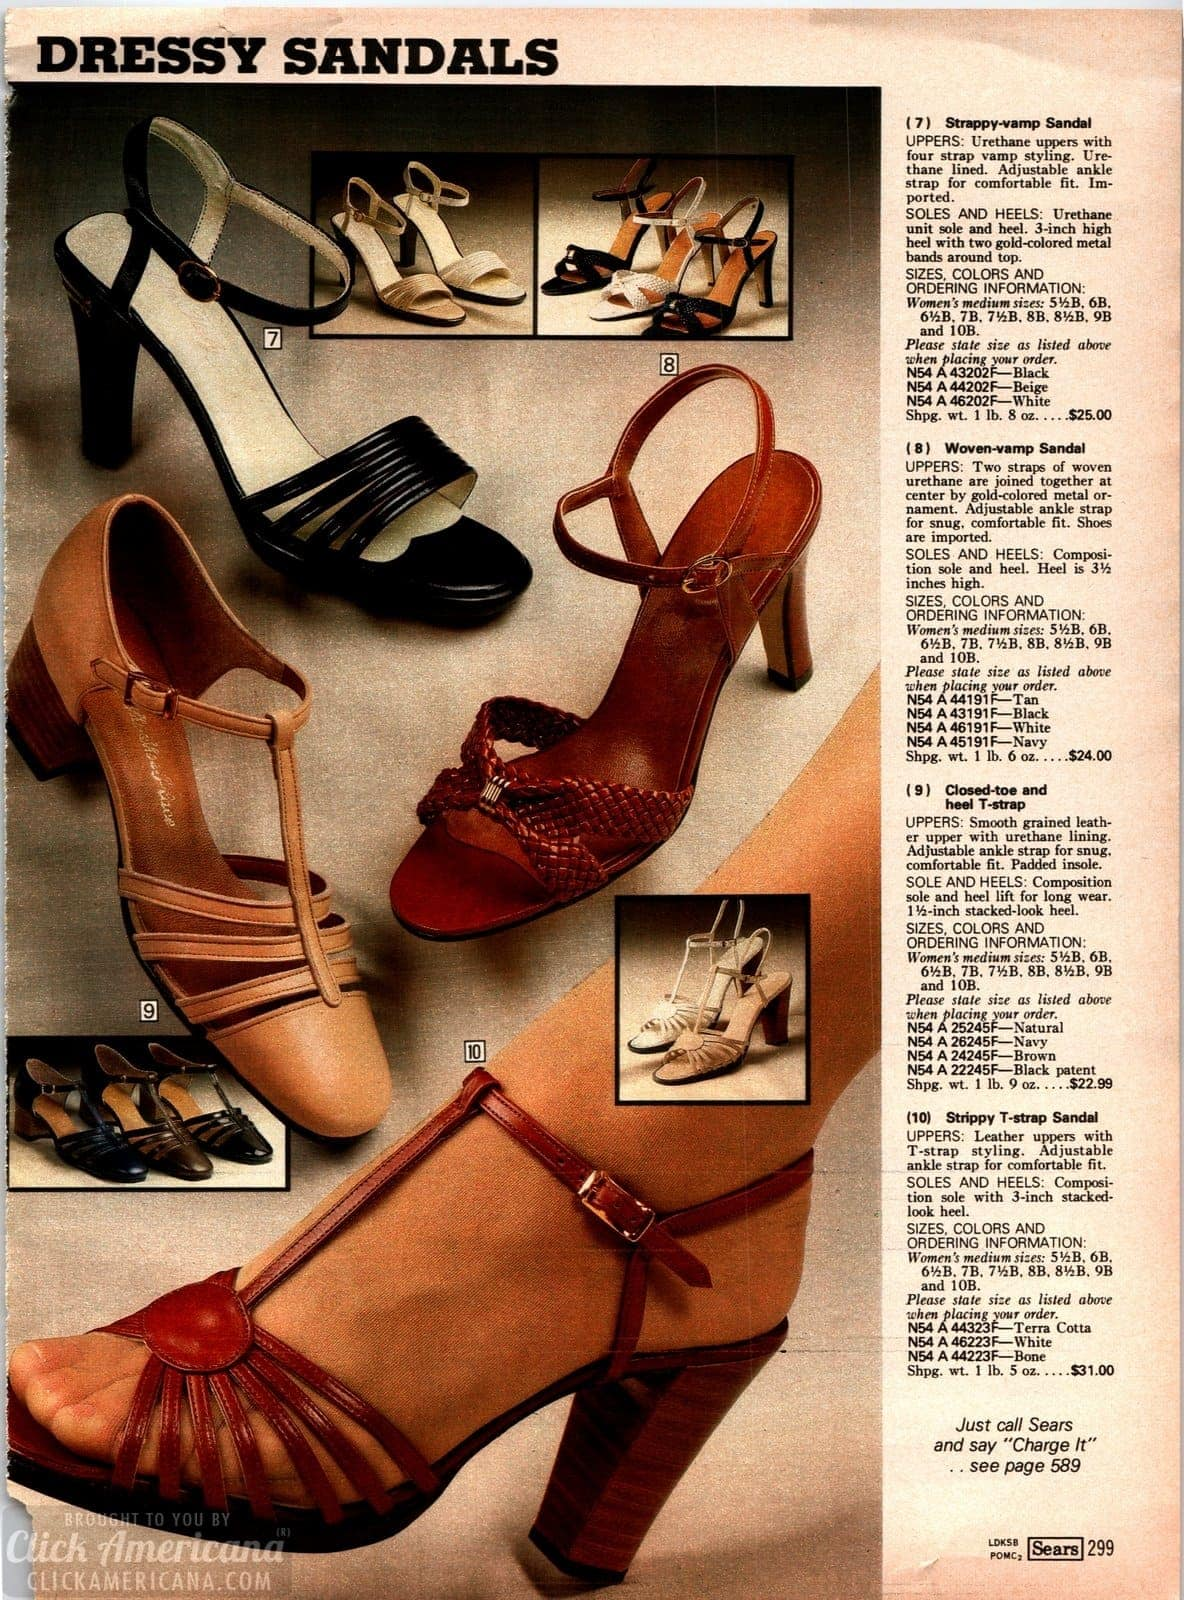 Vintage strappy heels and sandals for women from 1979